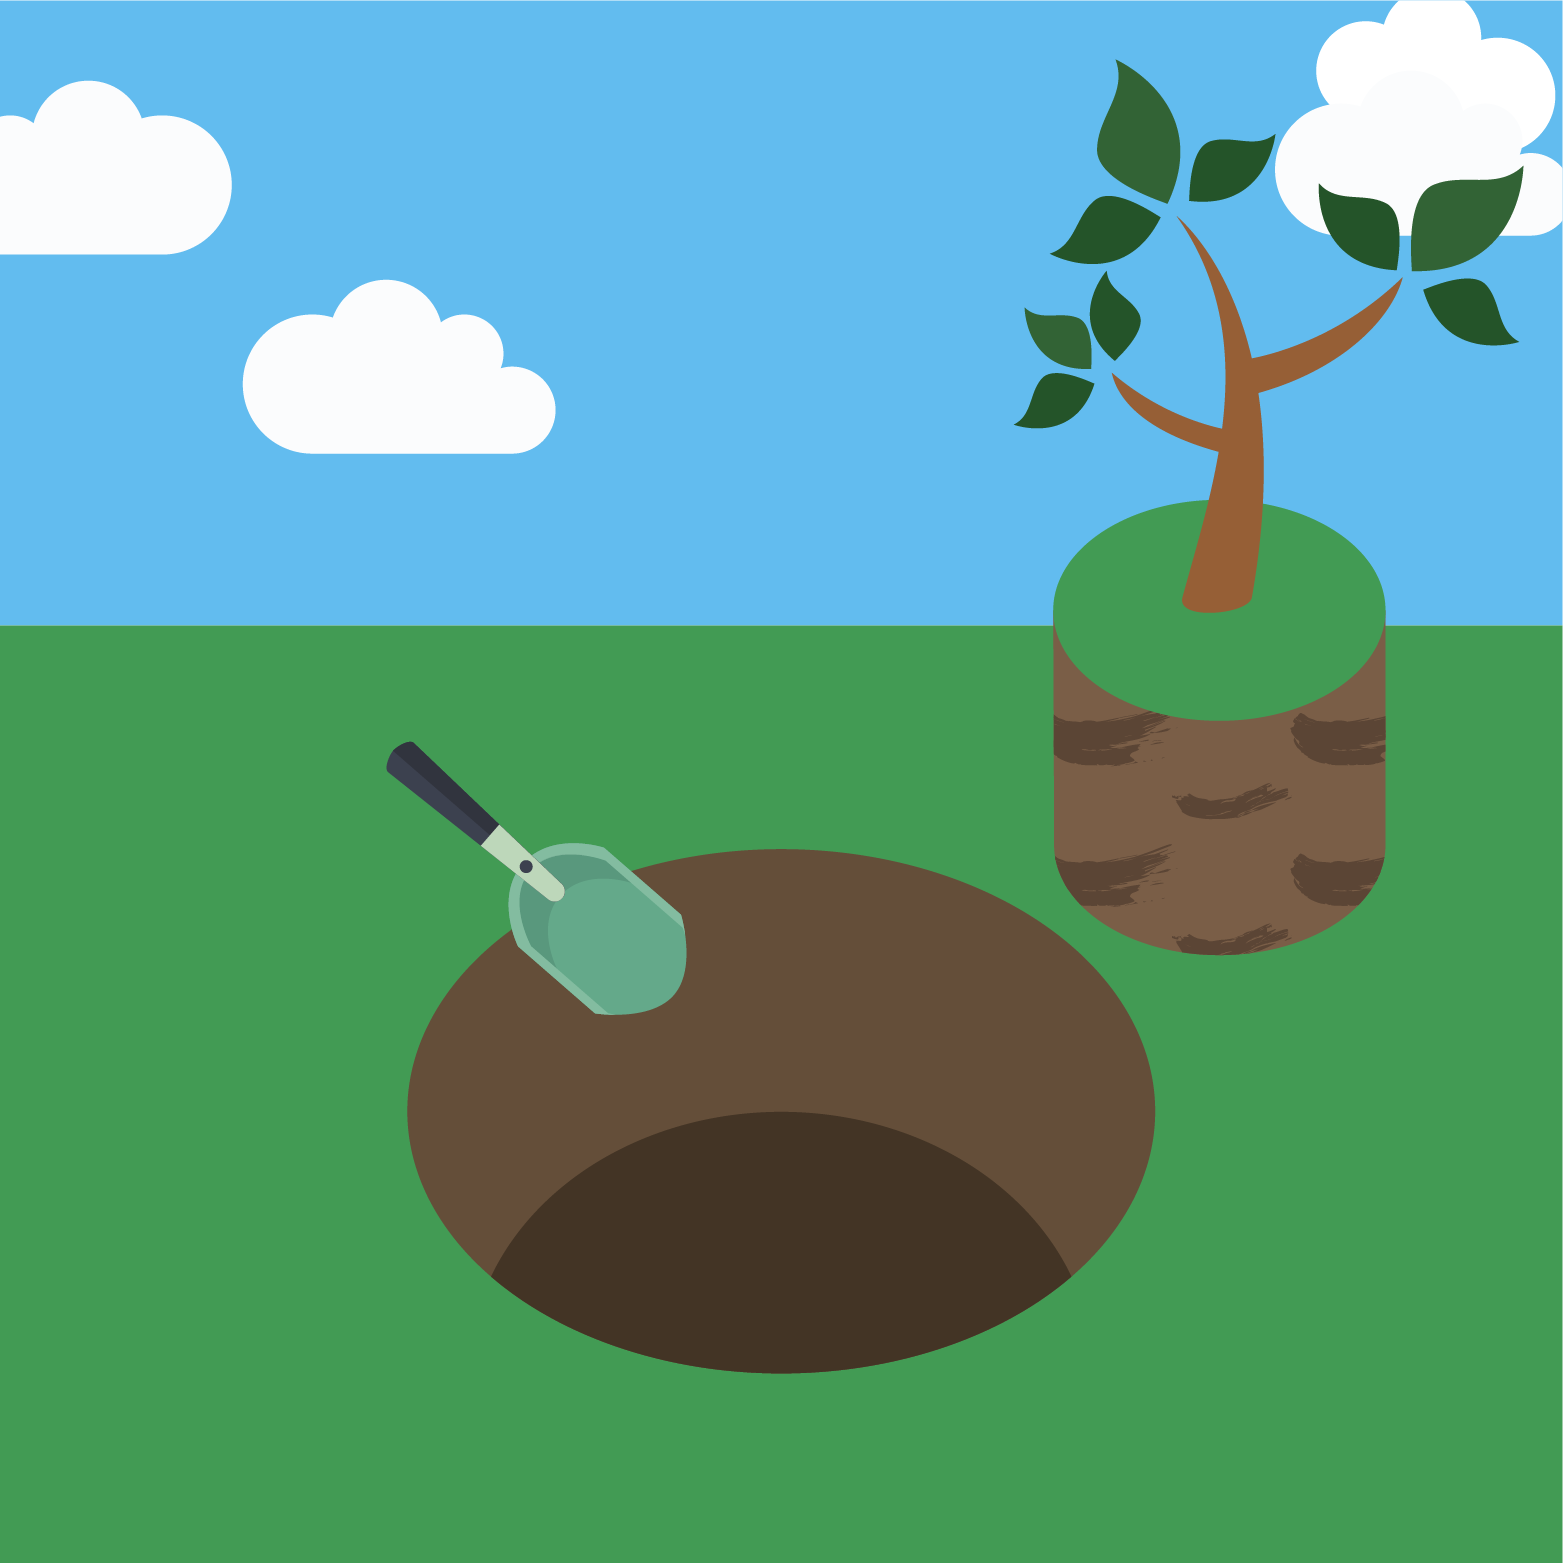 icon for planting a tree step 1